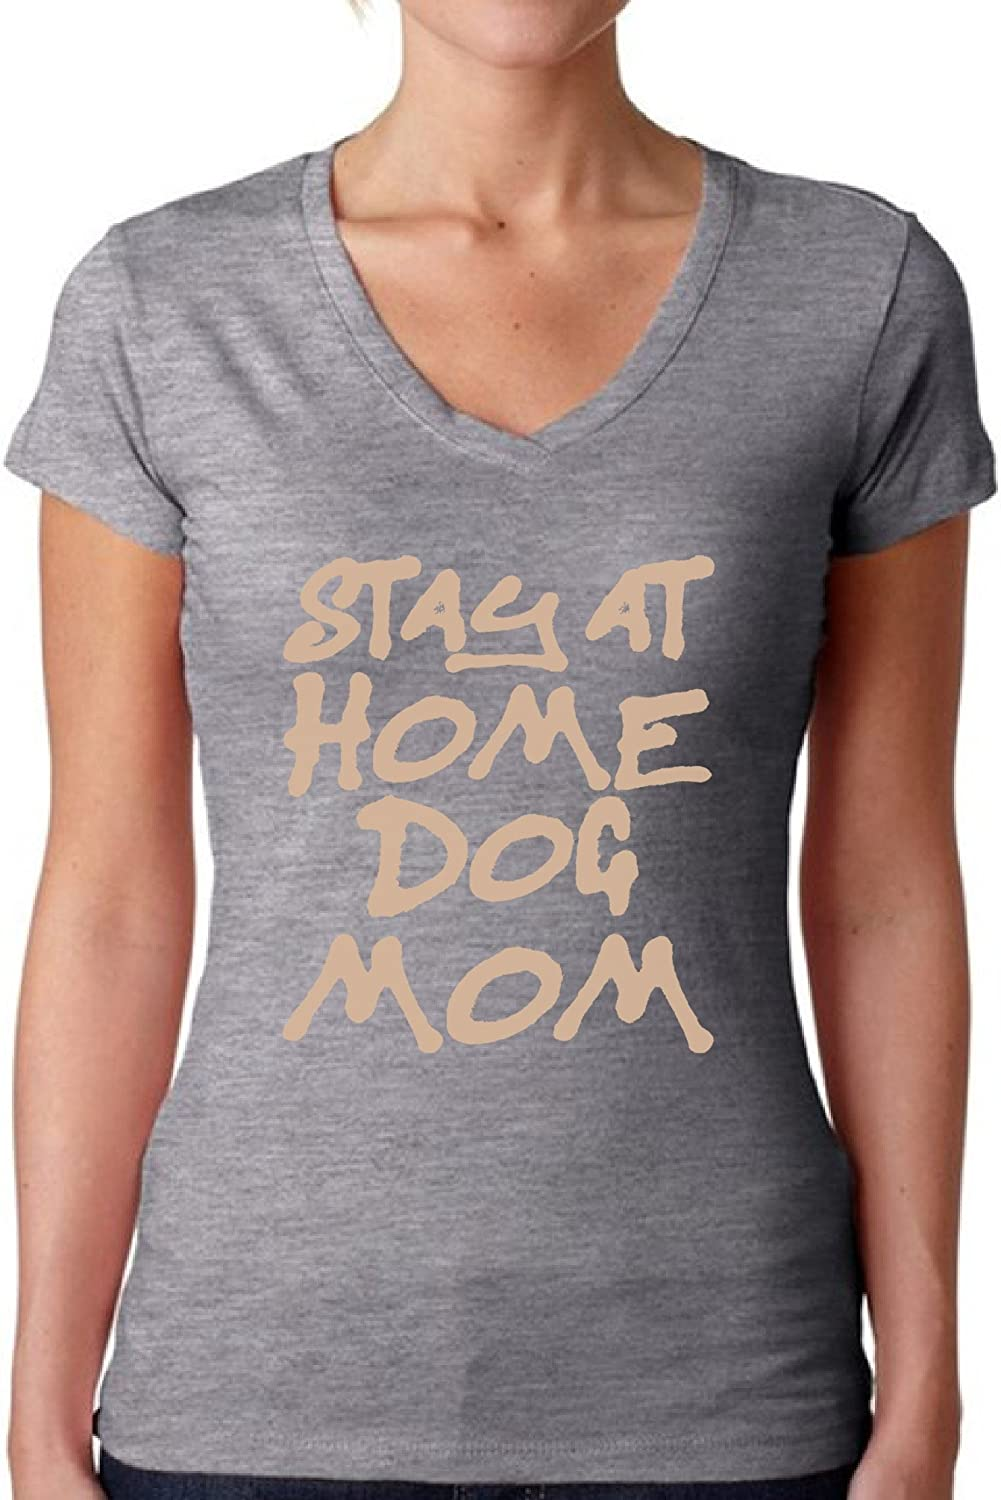 Awkward Styles Women's Stay at Home Dog Mom Graphic V-Neck T Shirt Tops for Dog Lovers